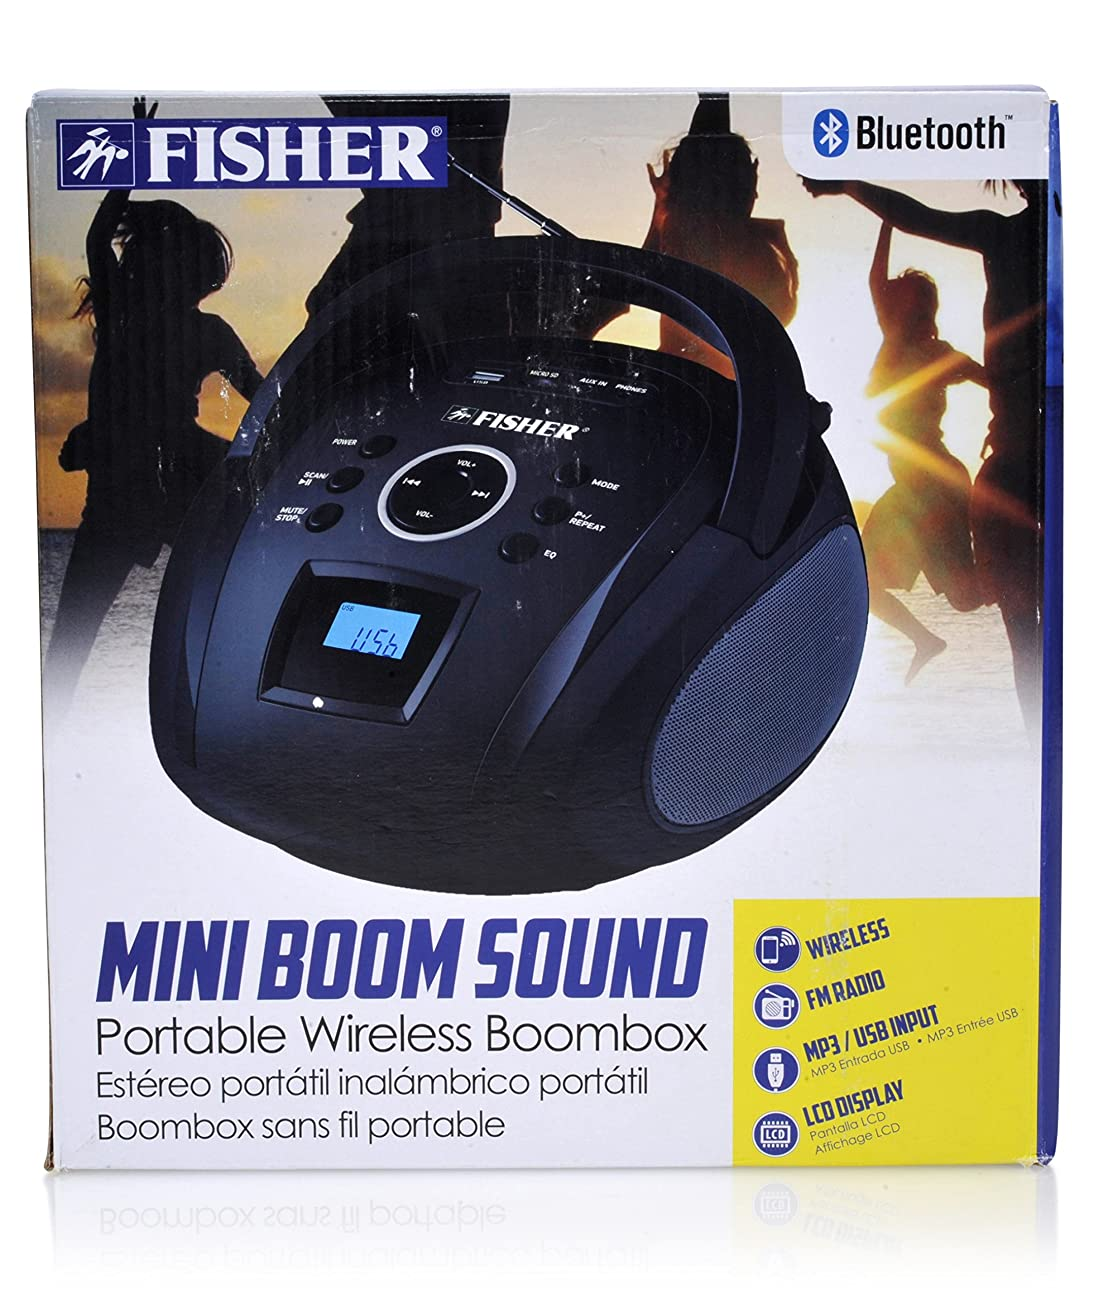 Fisher Mini Wireless Portable Boombox, With LCD Display, FM Radio, Playback Recording, Equalizer, Built-in Microphone, Auxiliary Input, and Ultra-Portable Design 6